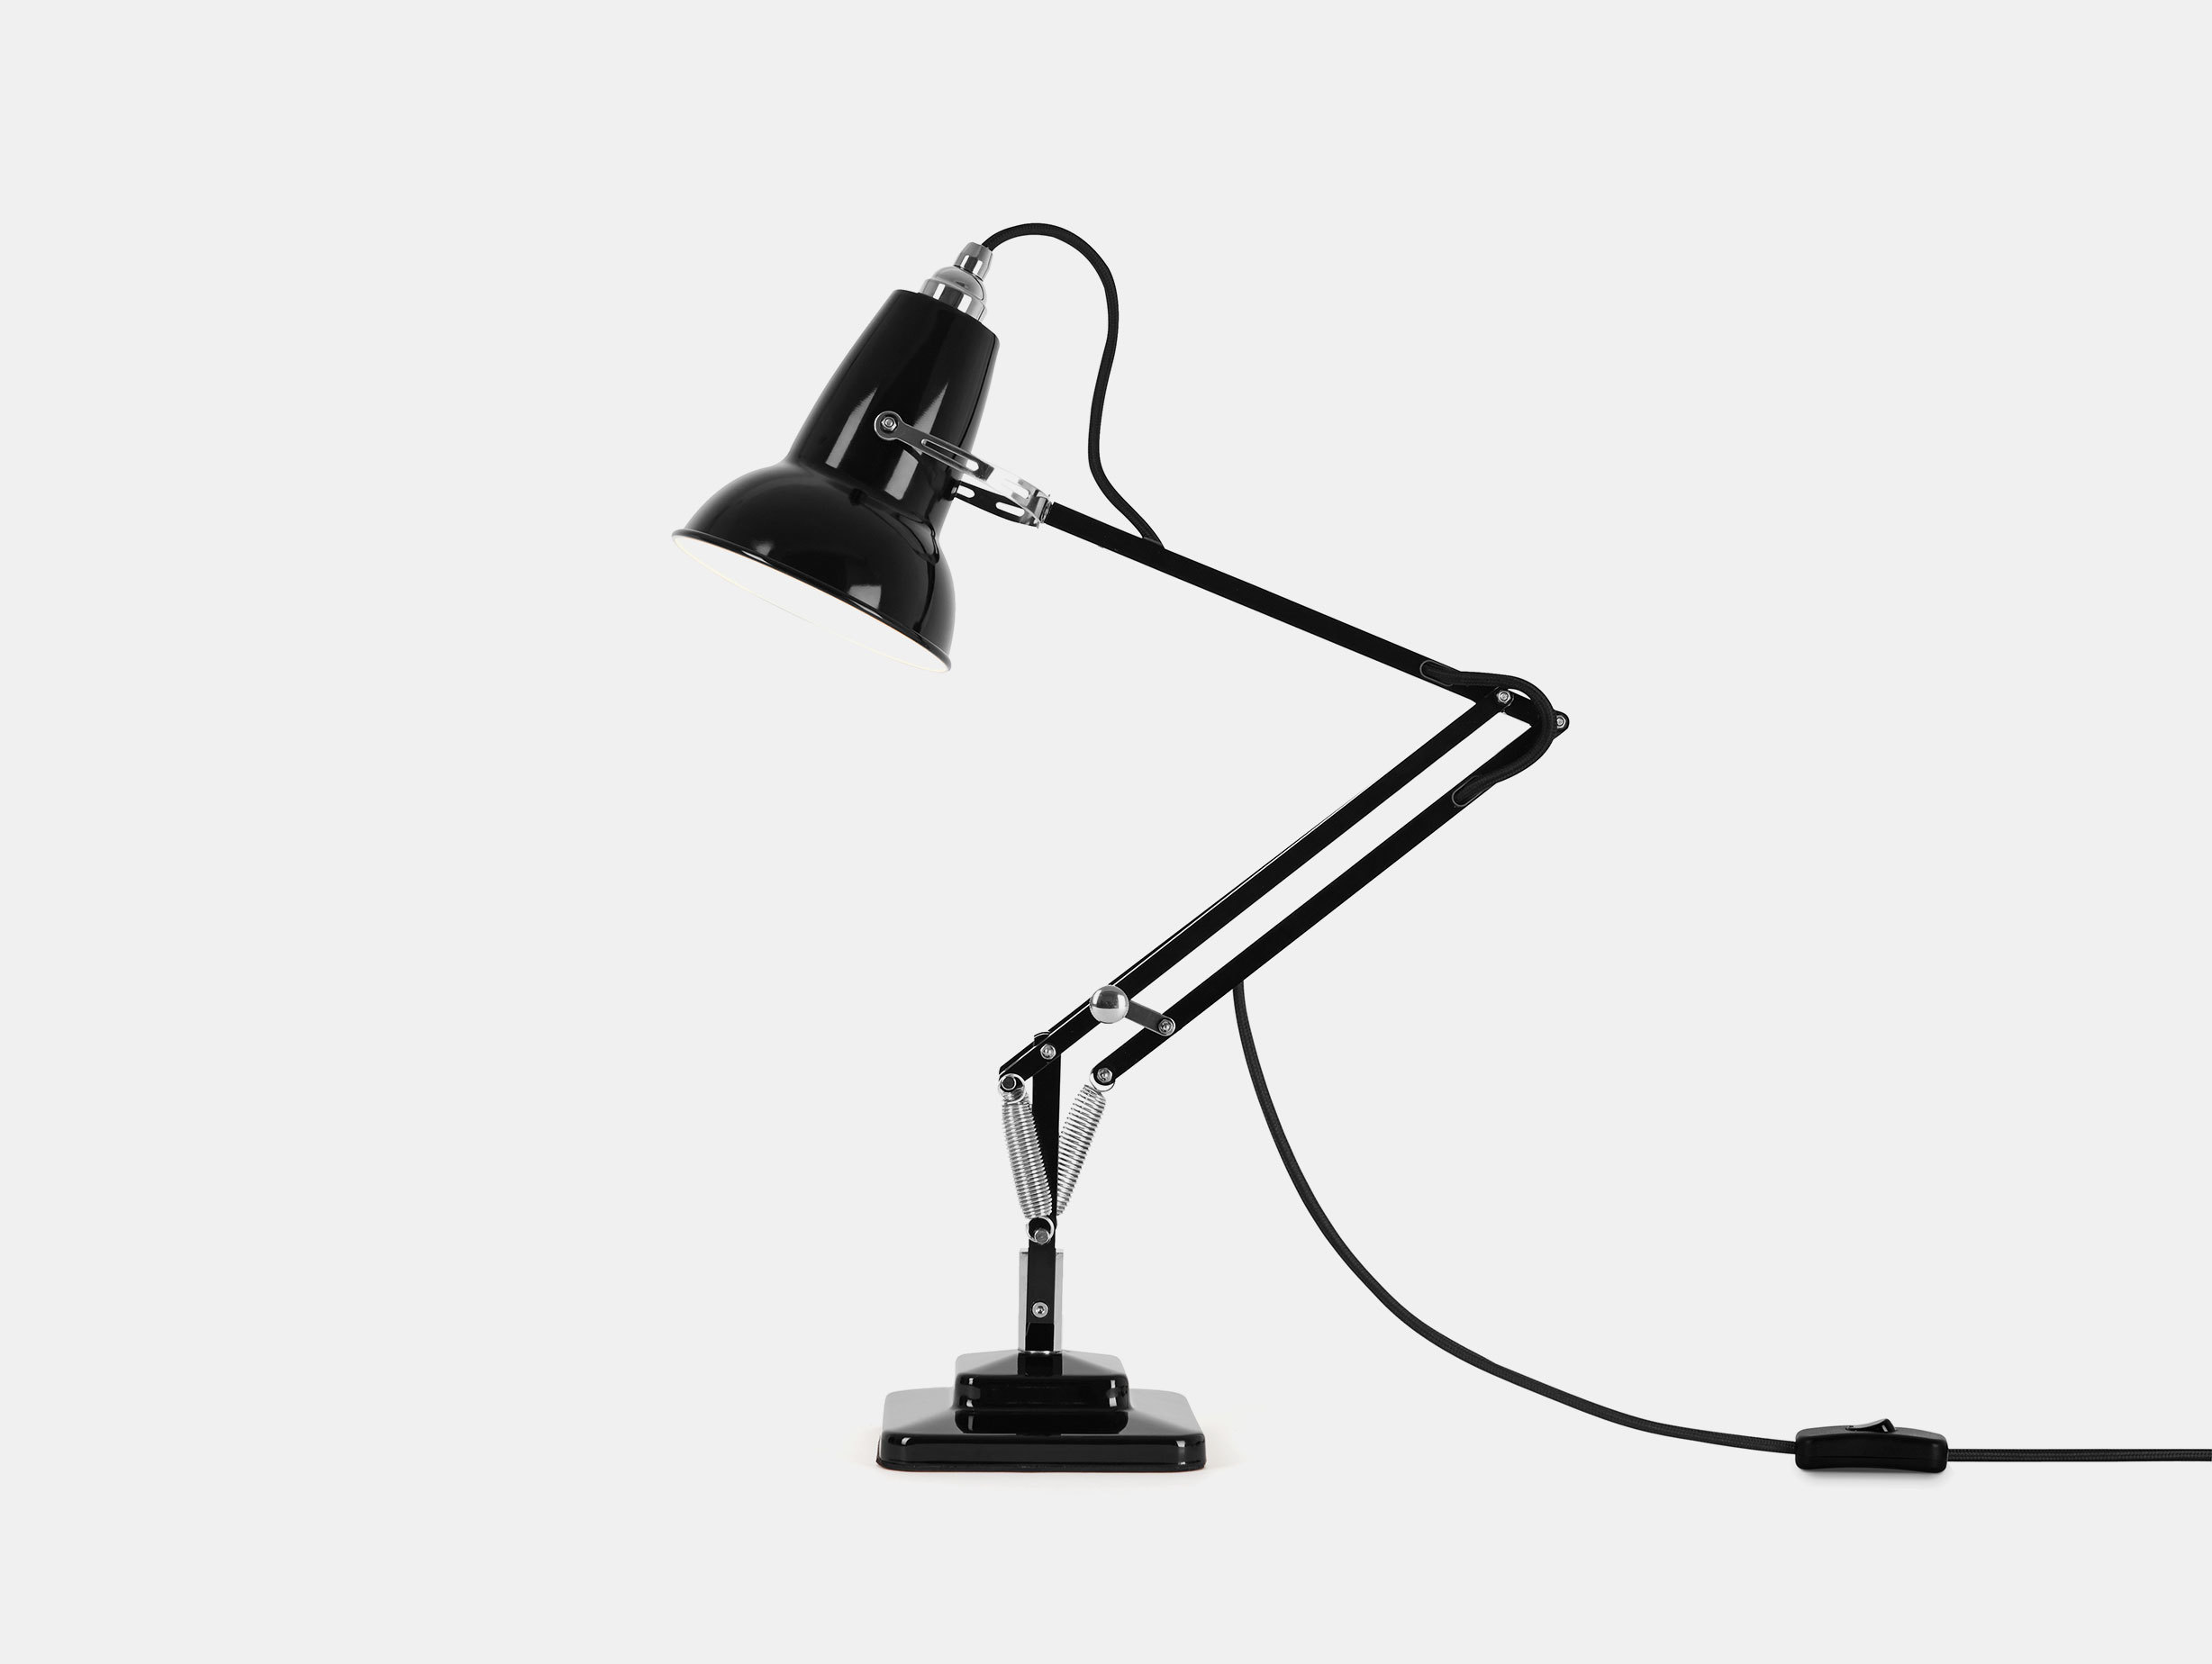 Anglepoise 1227 Mini Desk Lamp image 2